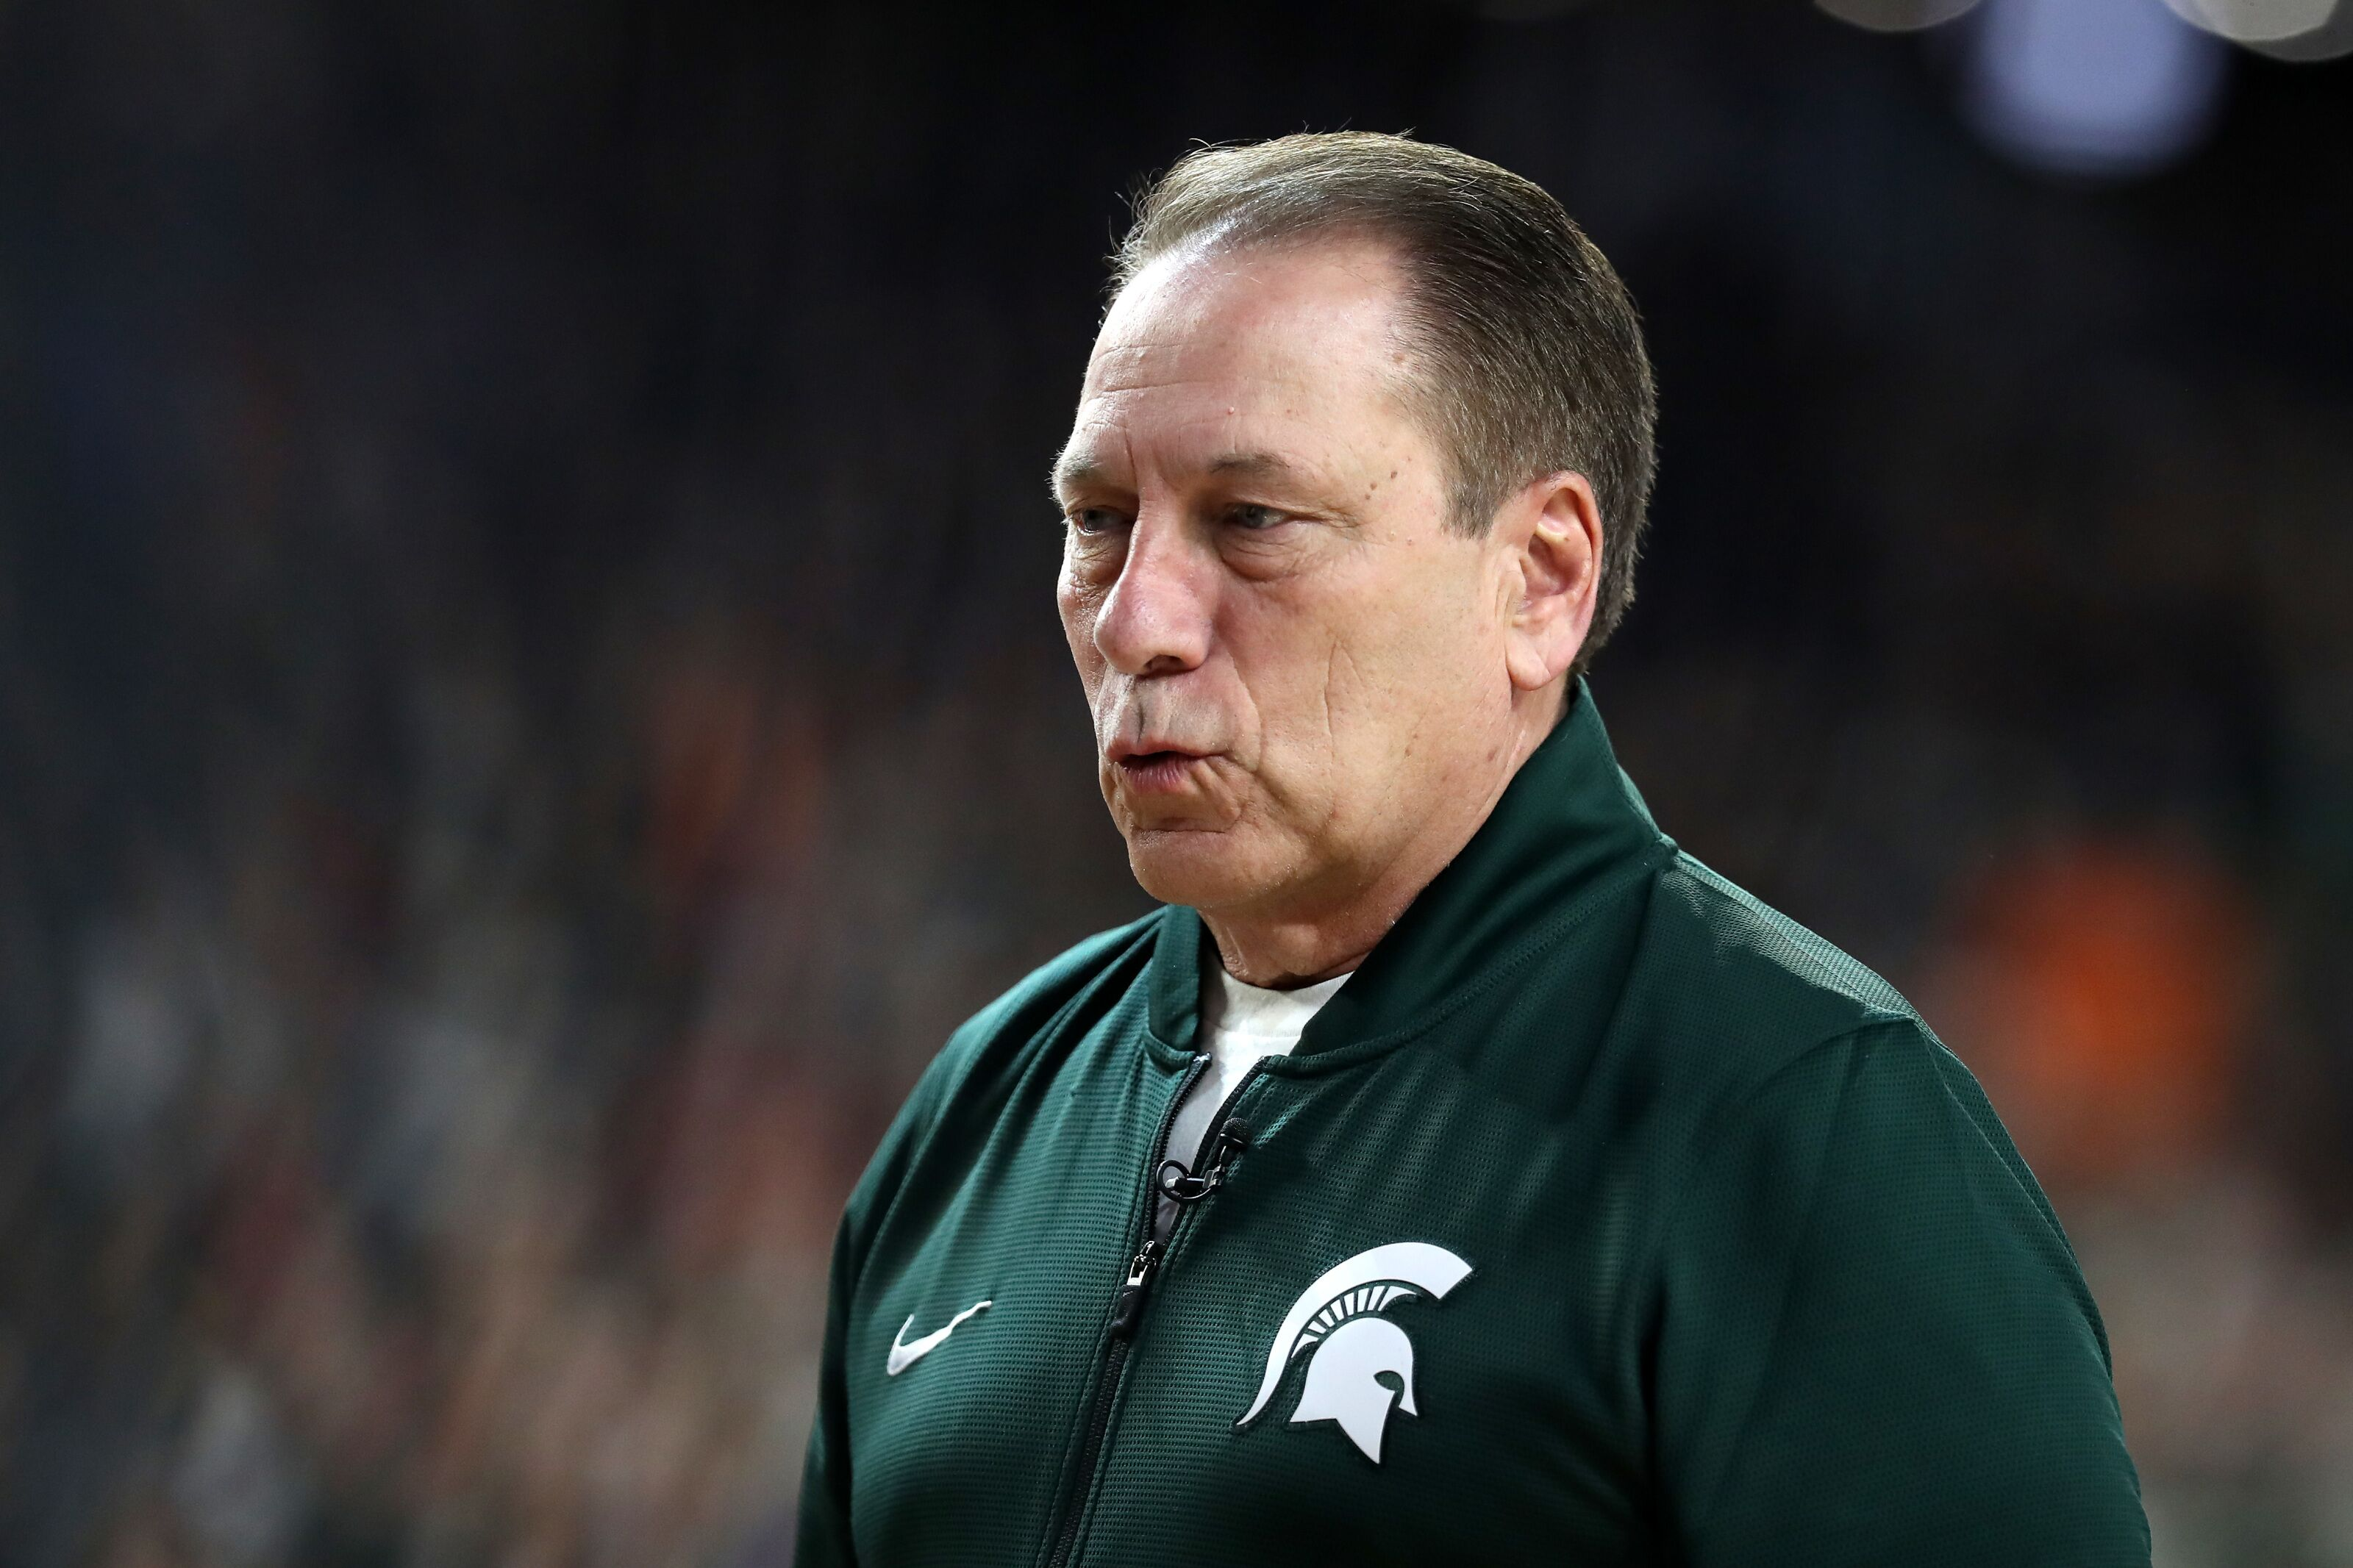 Michigan State basketball opens 2019-20 as nation's No. 1 team